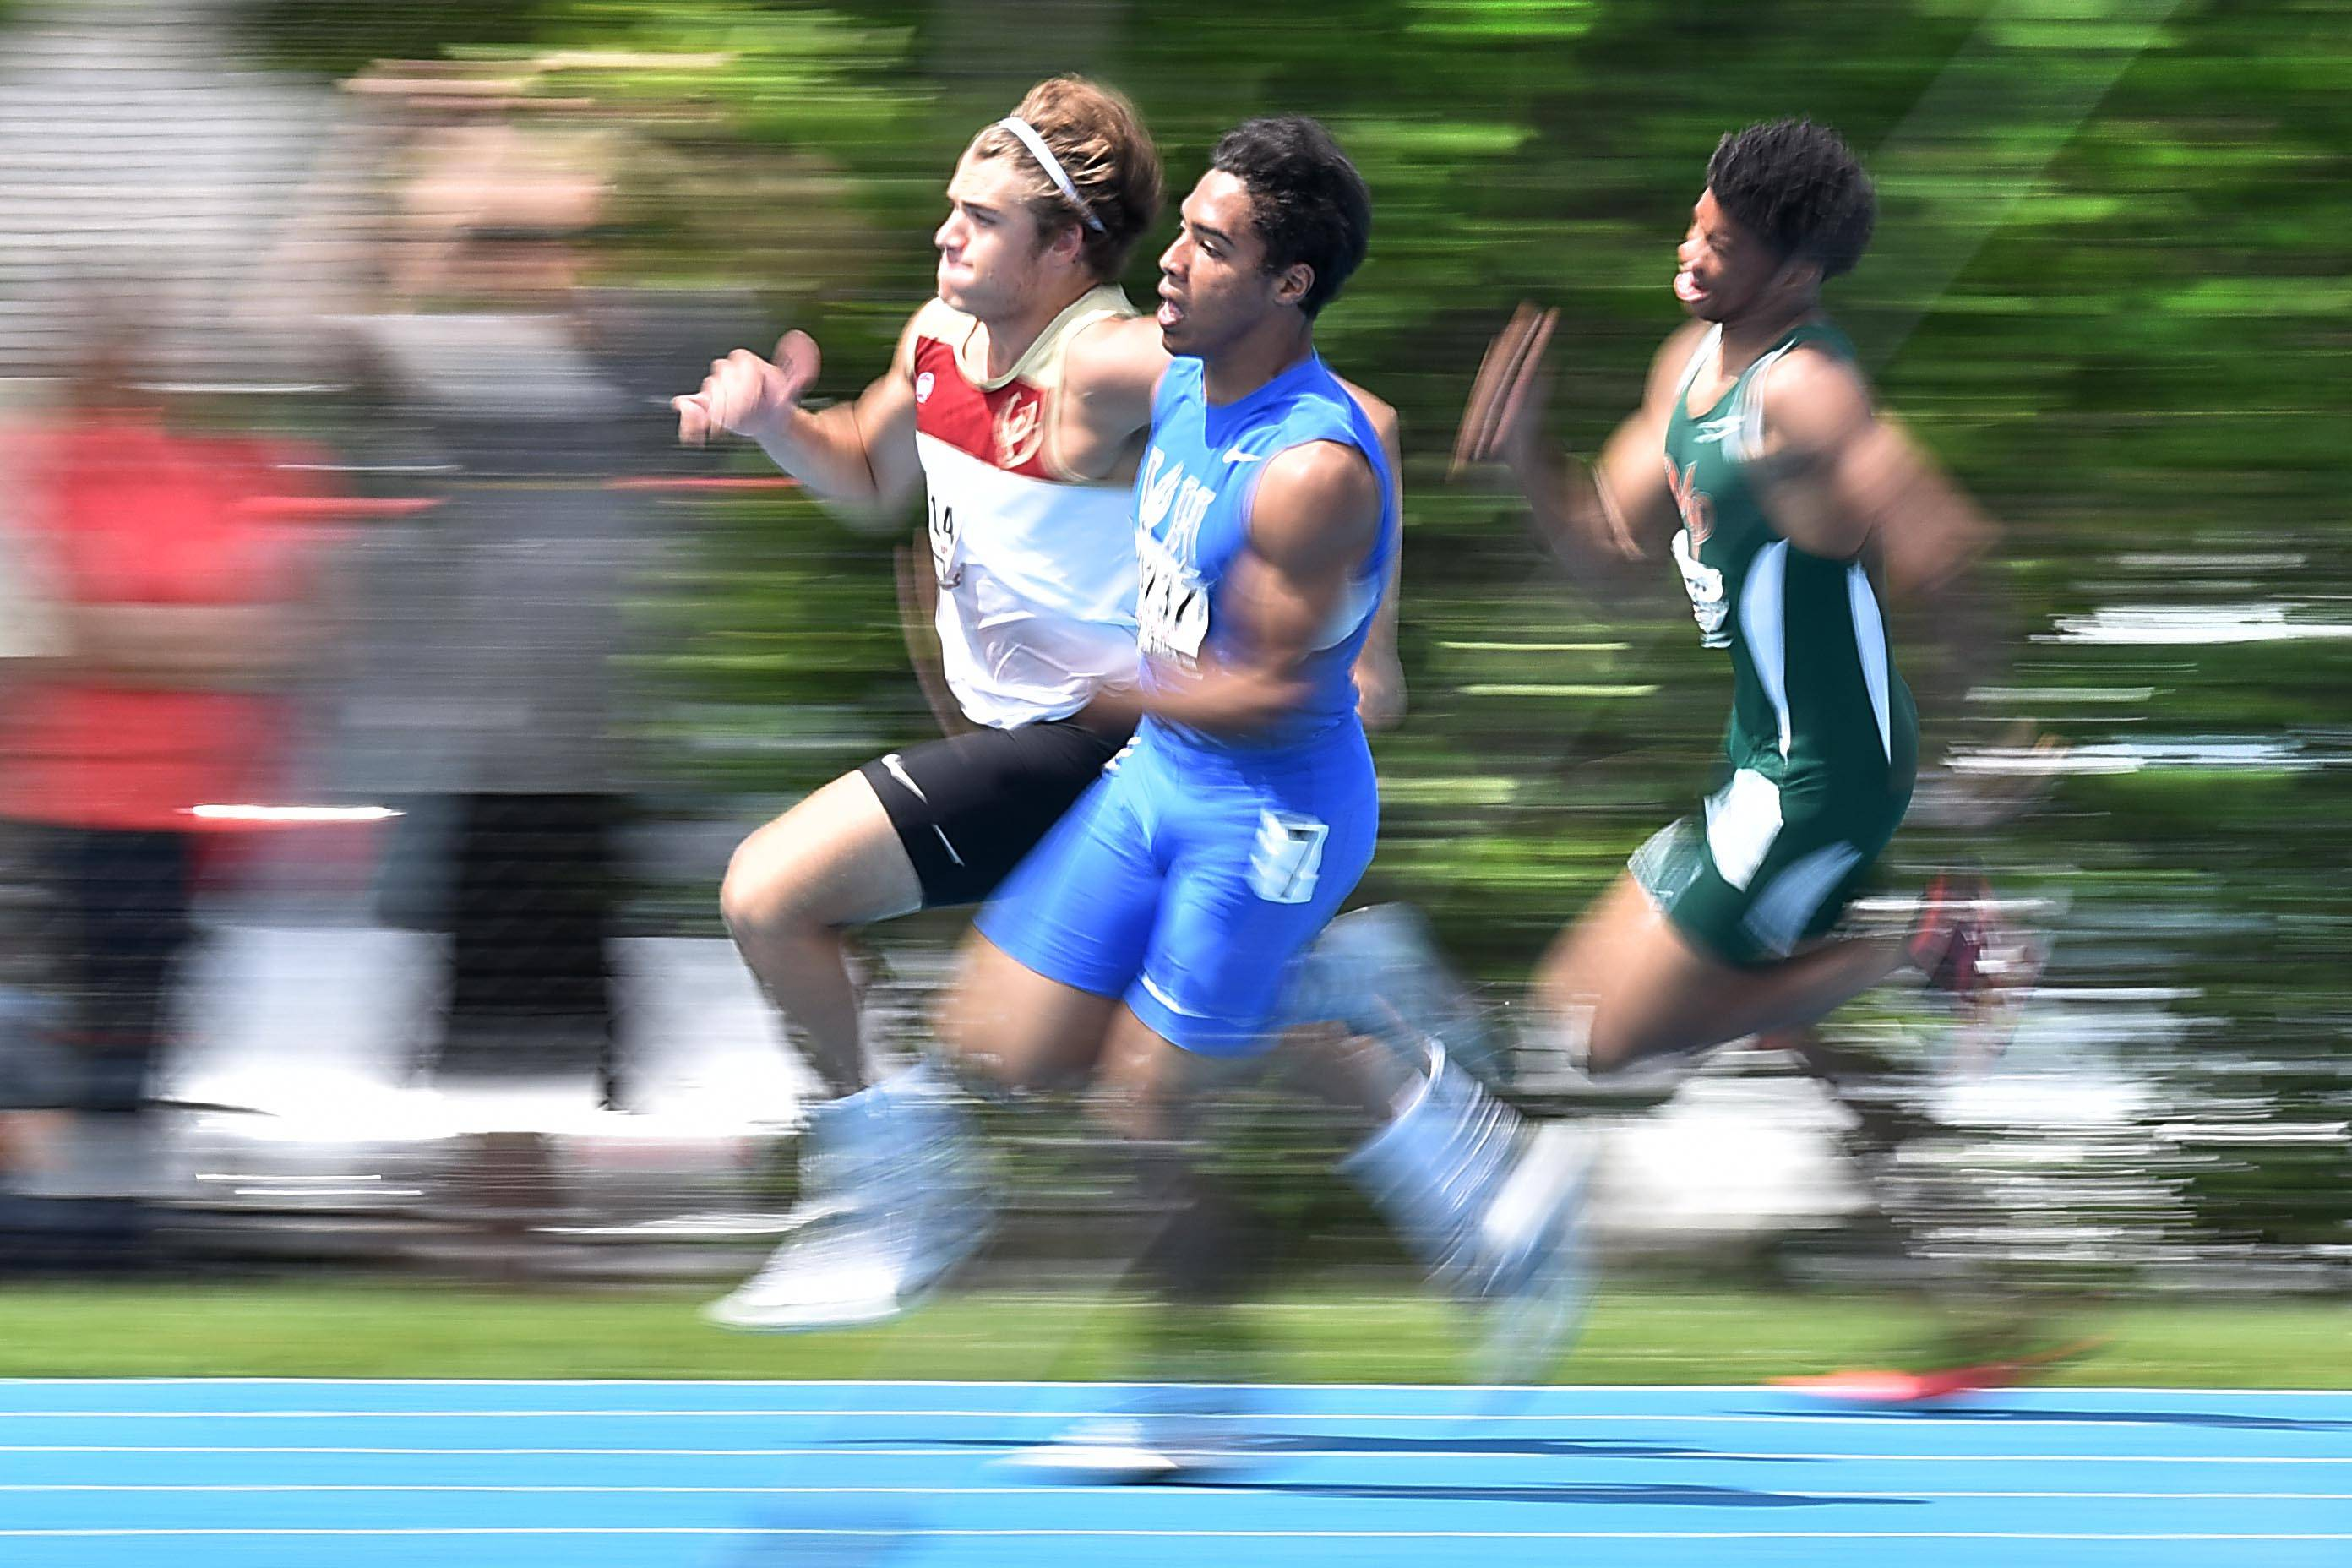 Vernon Hills' Joshua Williams and Montini's Mitch West streak around the corner in the Class 2A 200 meter dash Saturday at the boys track state finals in O'Brien Stadium at Eastern Illinois University in Charleston.